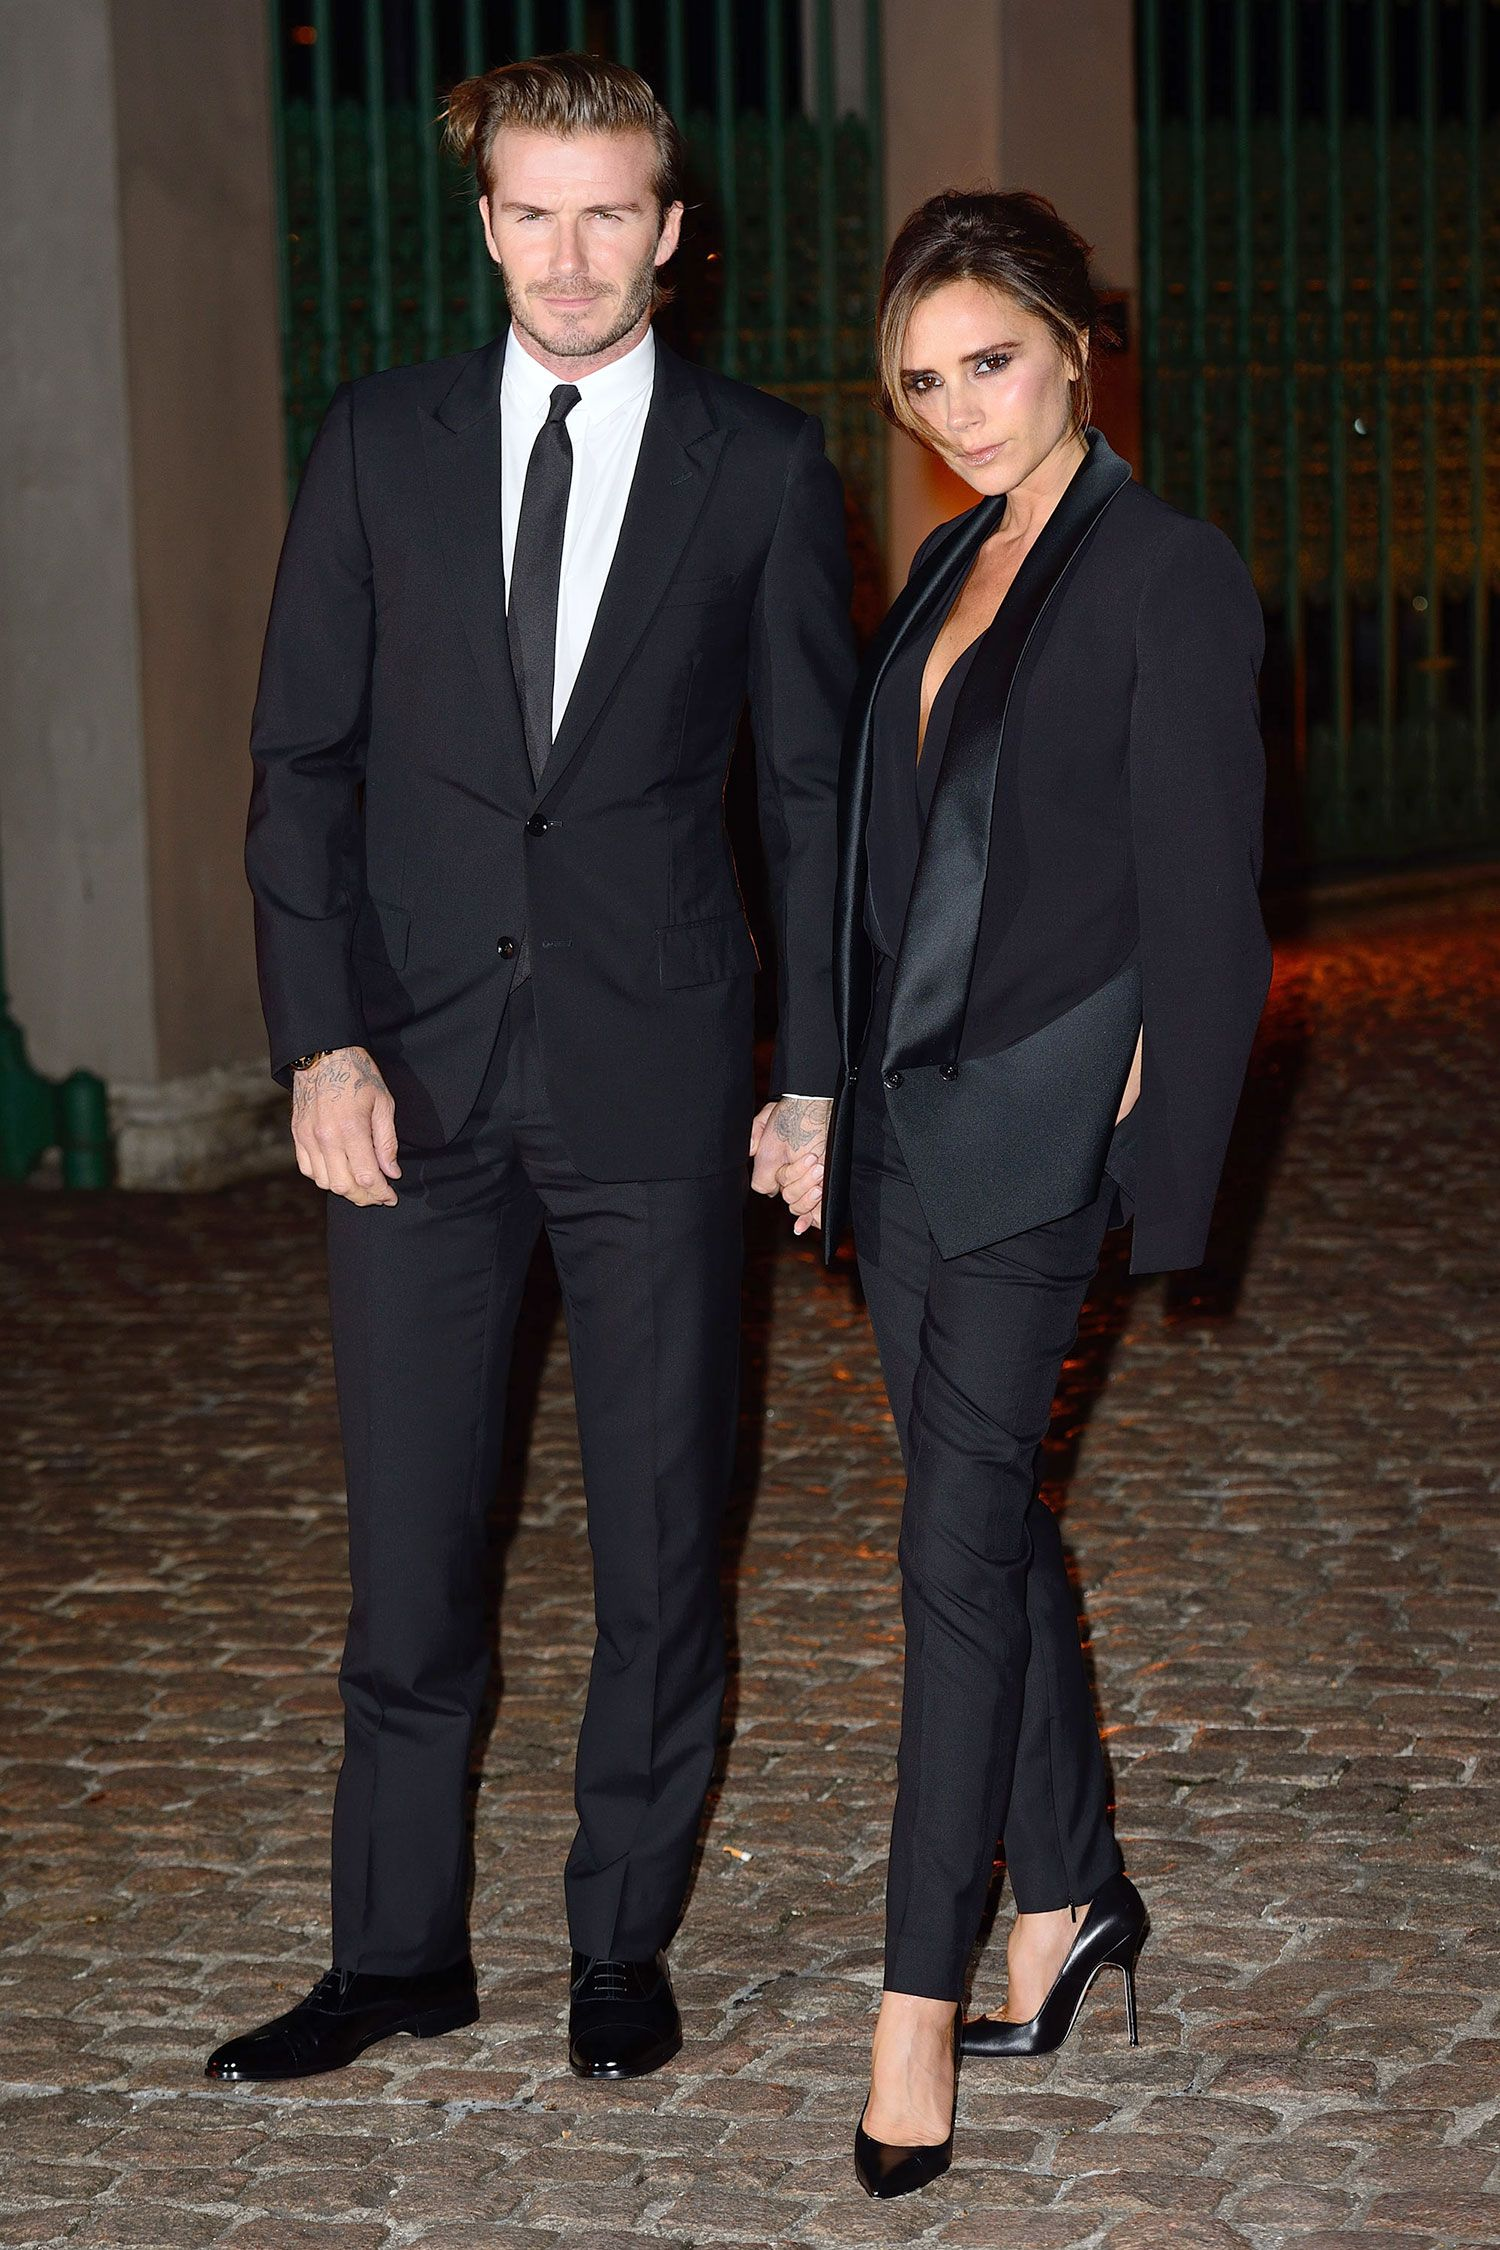 theLIST Two Makes Chic 9 Most Stylish Couples Stylish